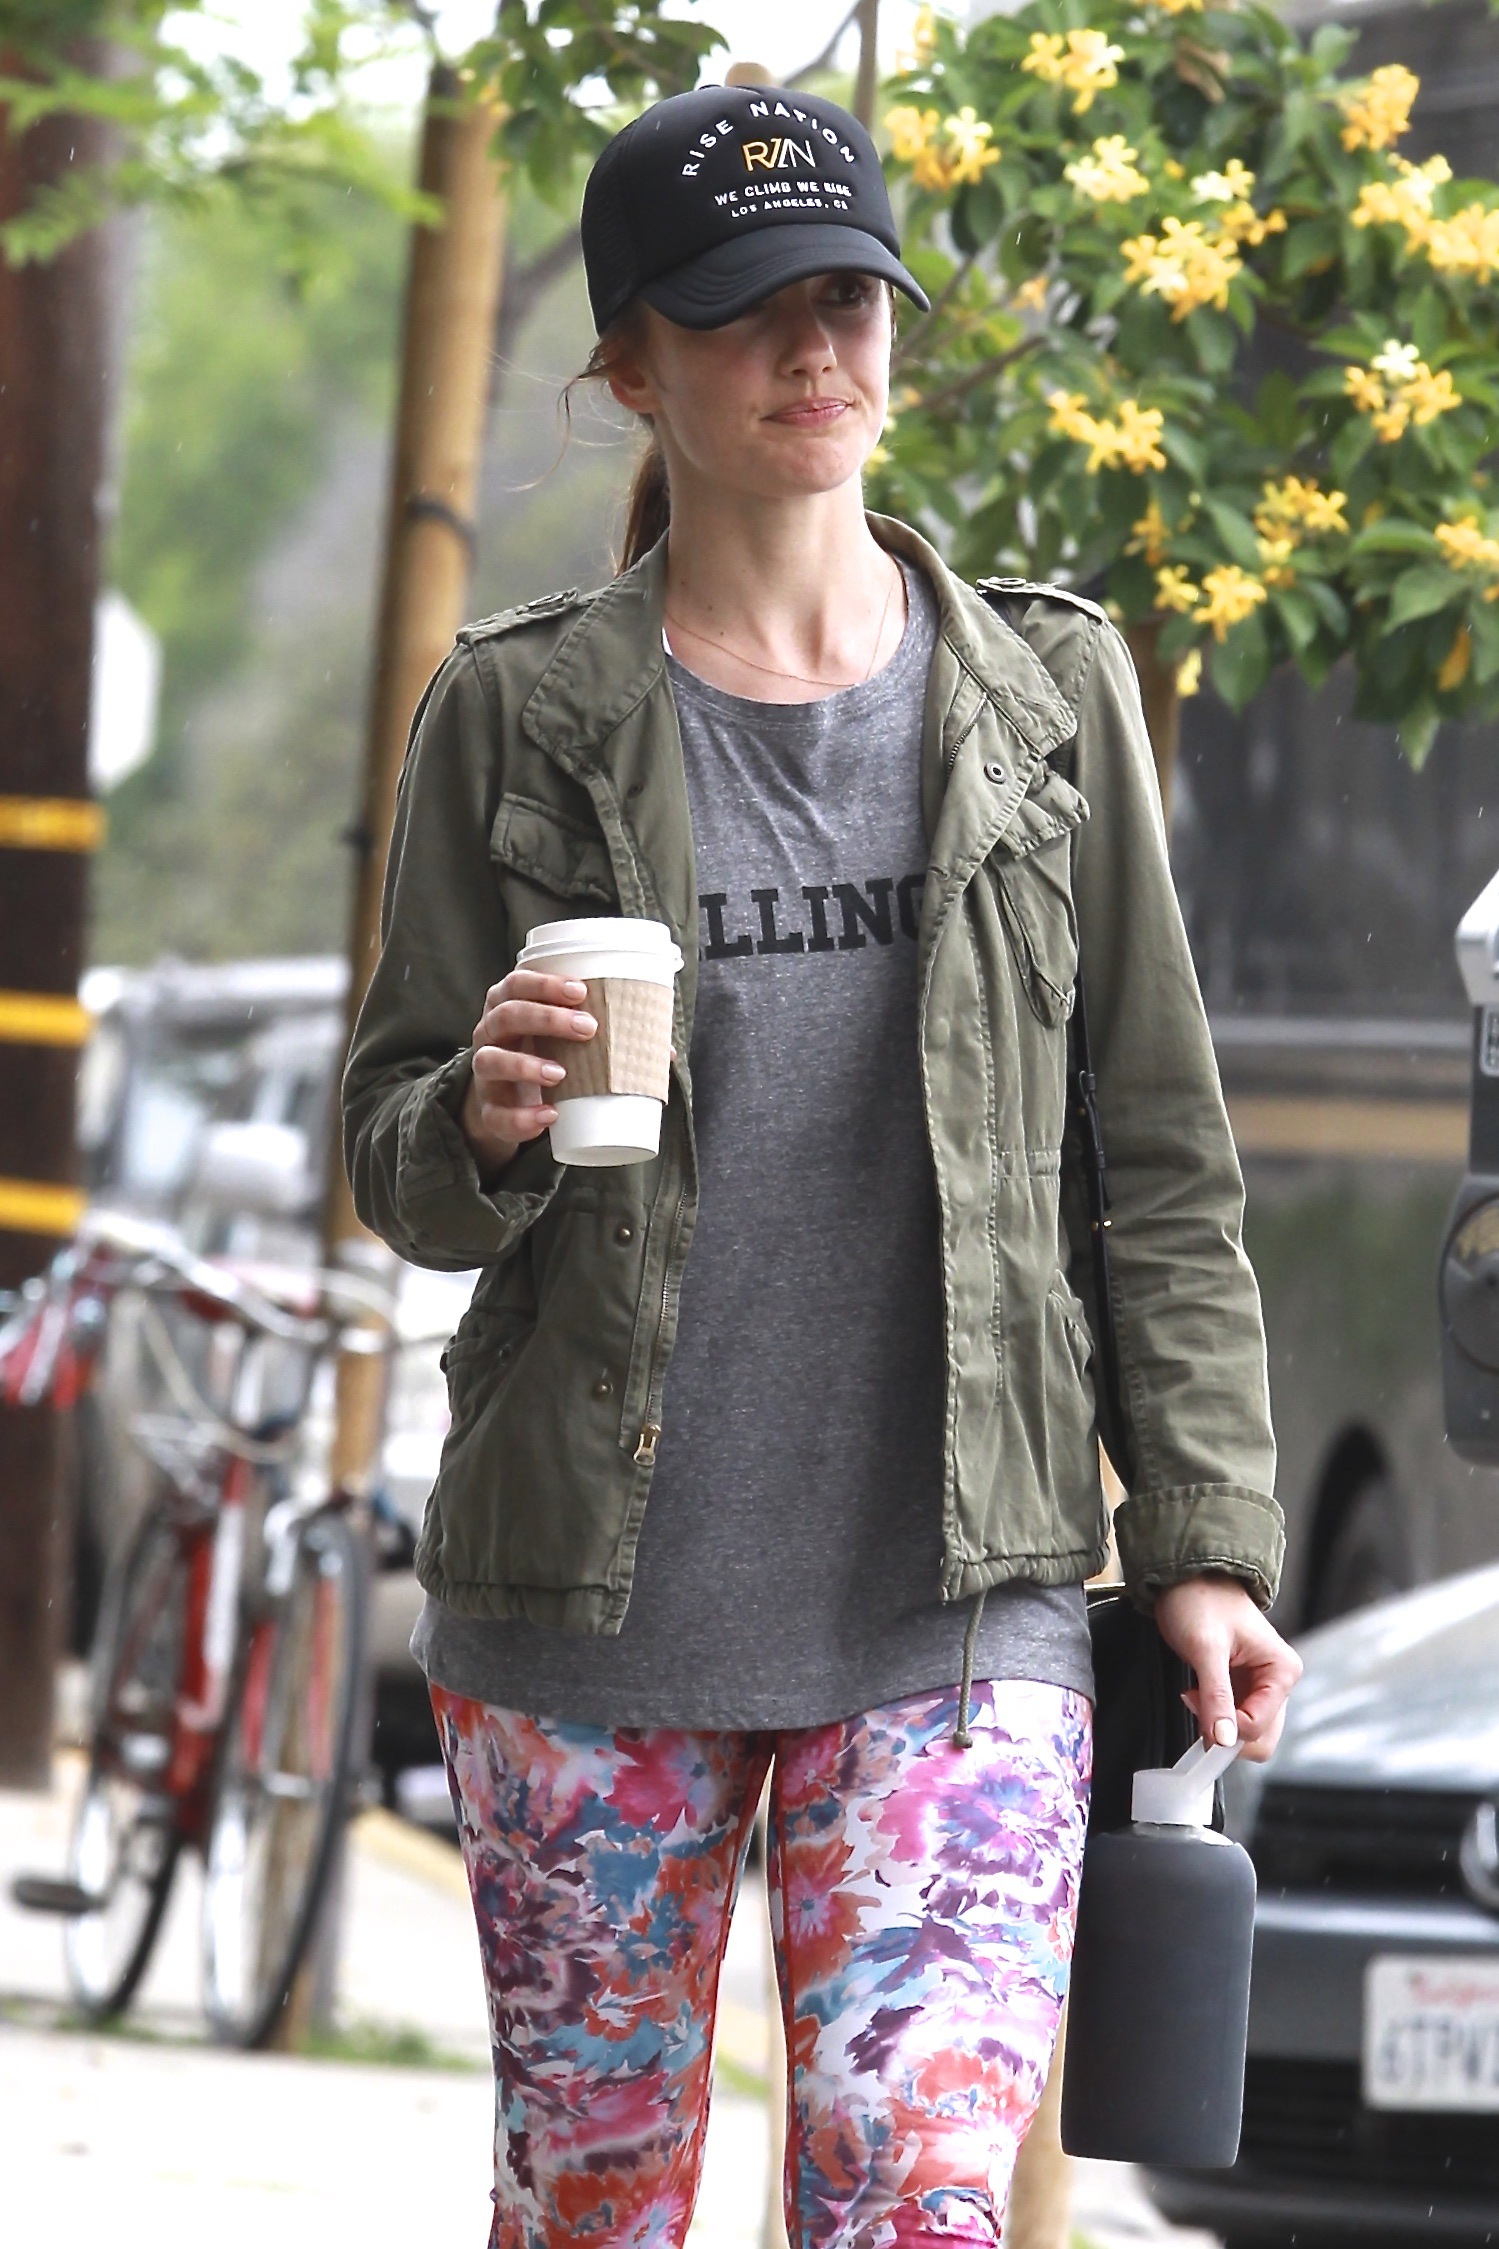 Minka Kelly spotted leaving the gym in West Hollywood                                    Featuring: Minka Kelly                  Where: Los Angeles, California, United States                  When: 07 Apr 2016                  Credit: WENN.com